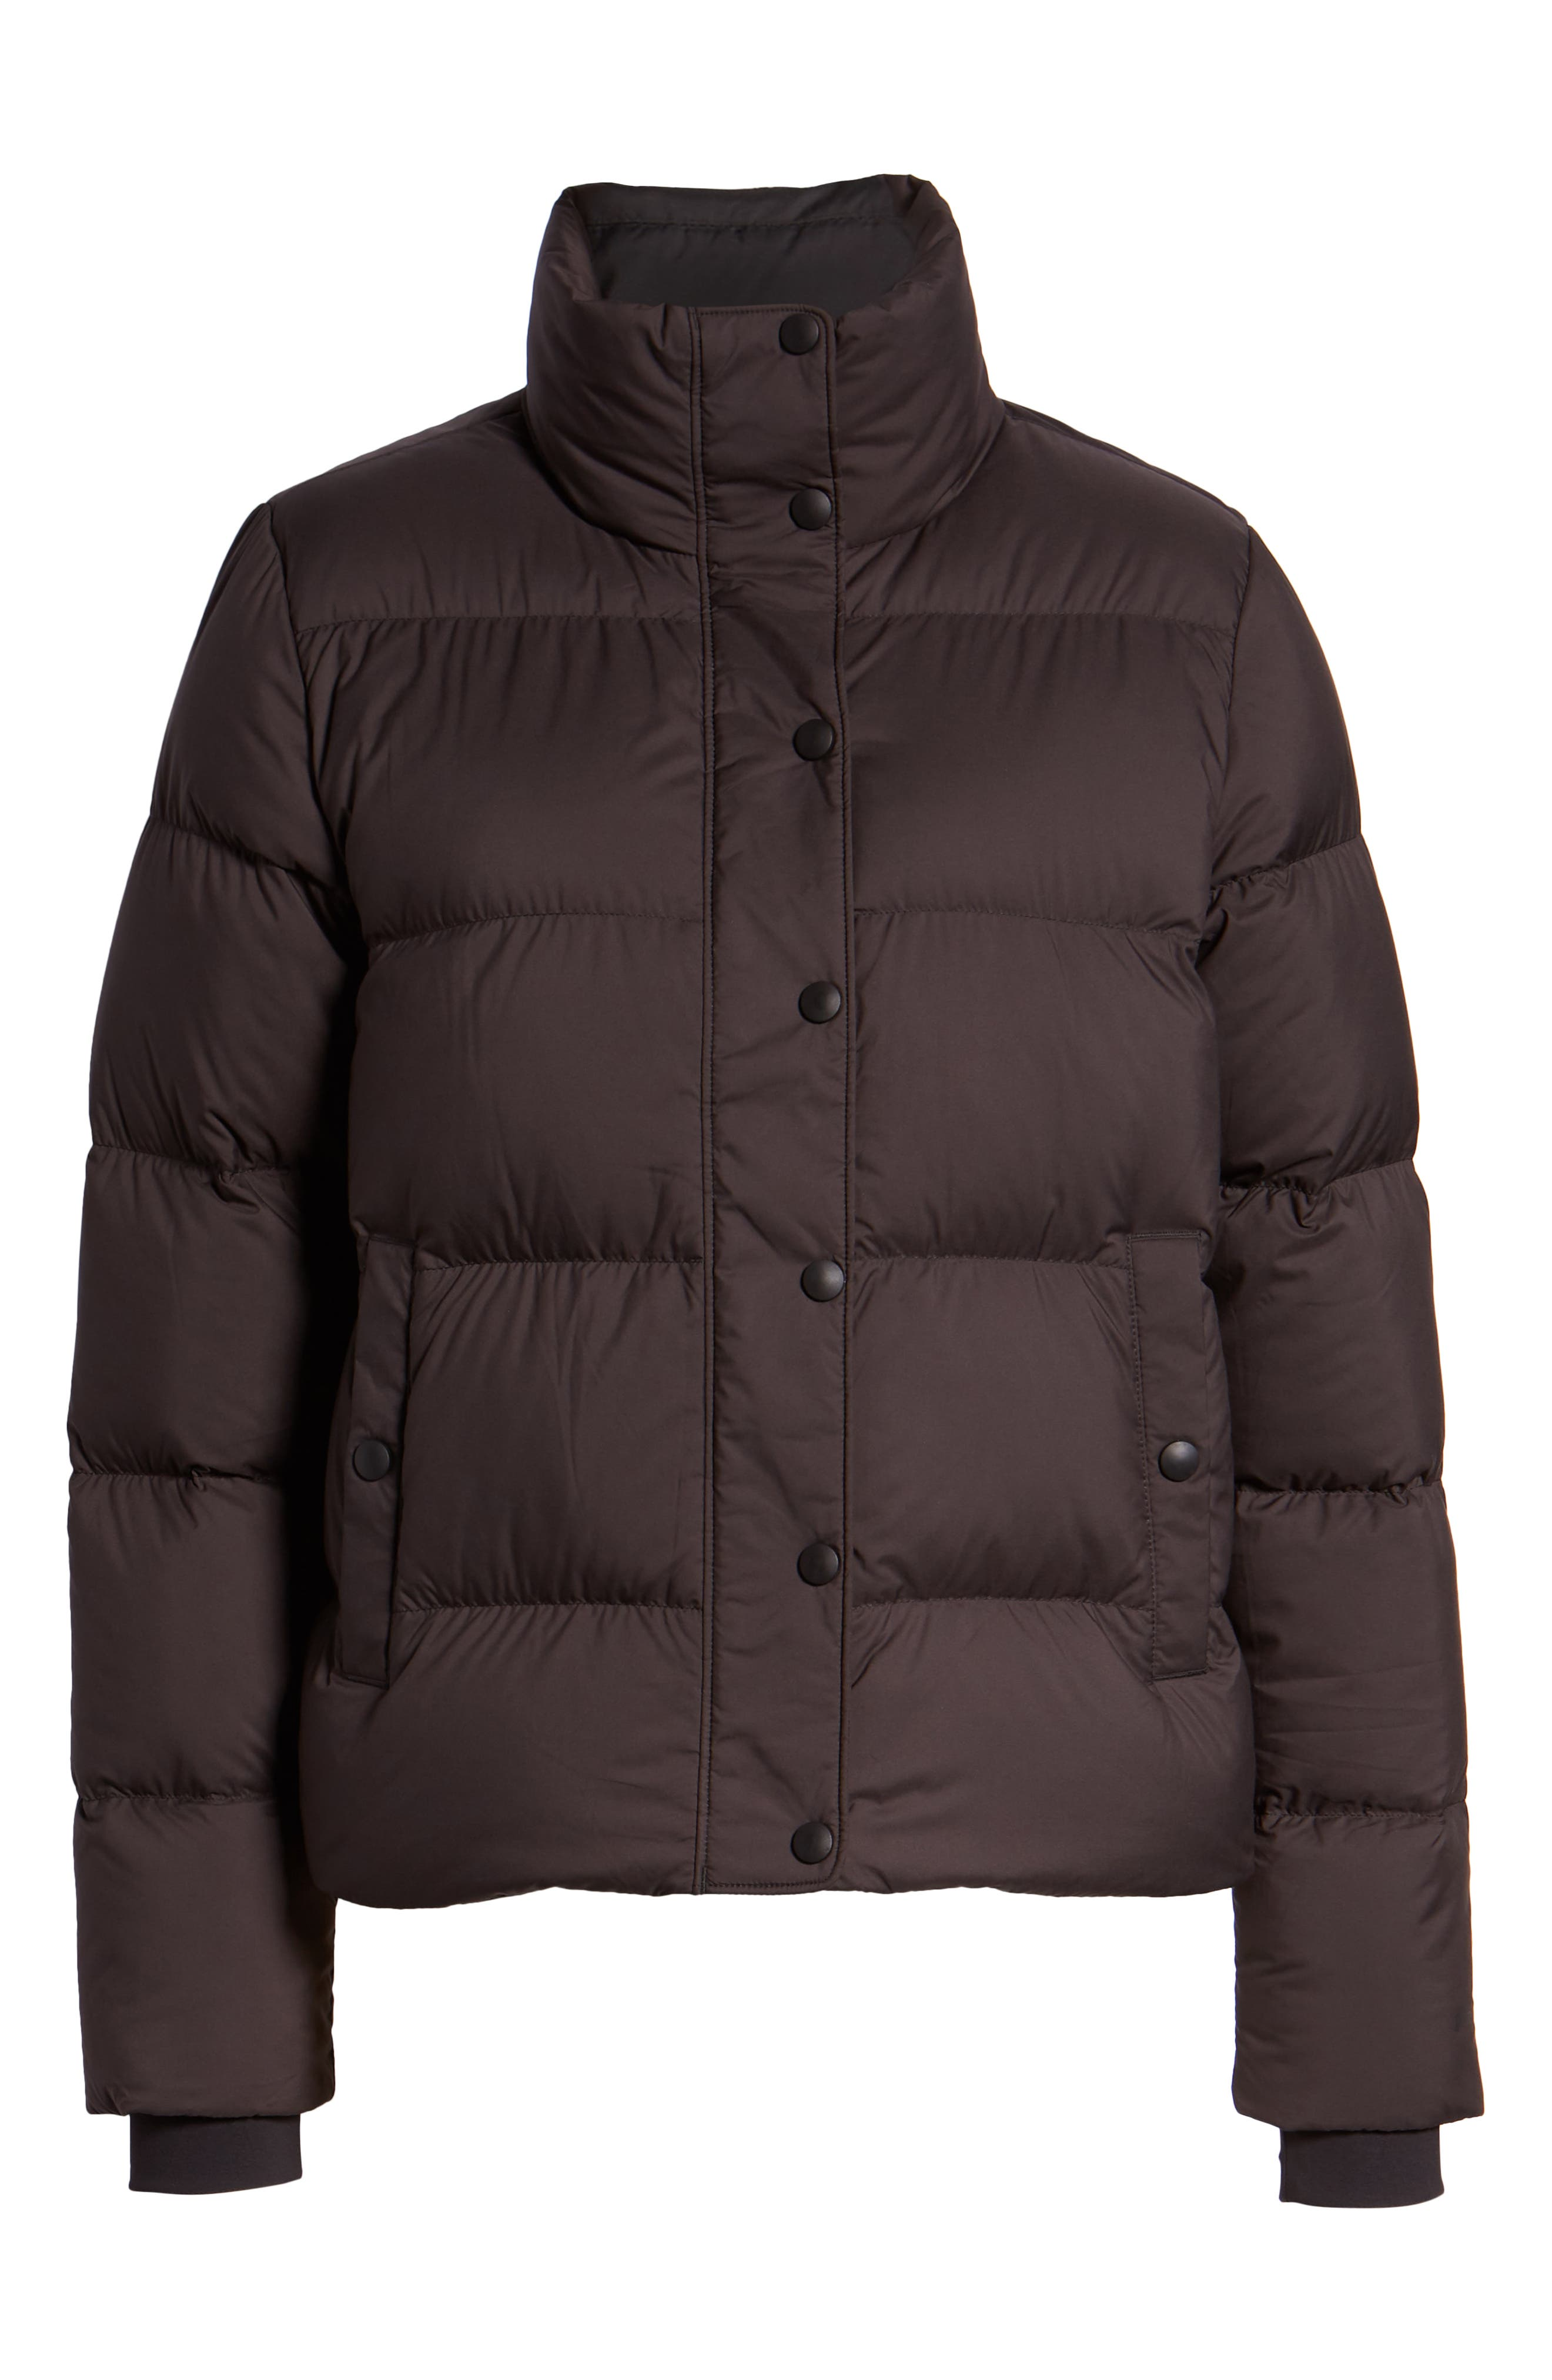 PATAGONIA, Silent Water Repellent 700-Fill Power Down Insulated Jacket, Alternate thumbnail 6, color, BLACK